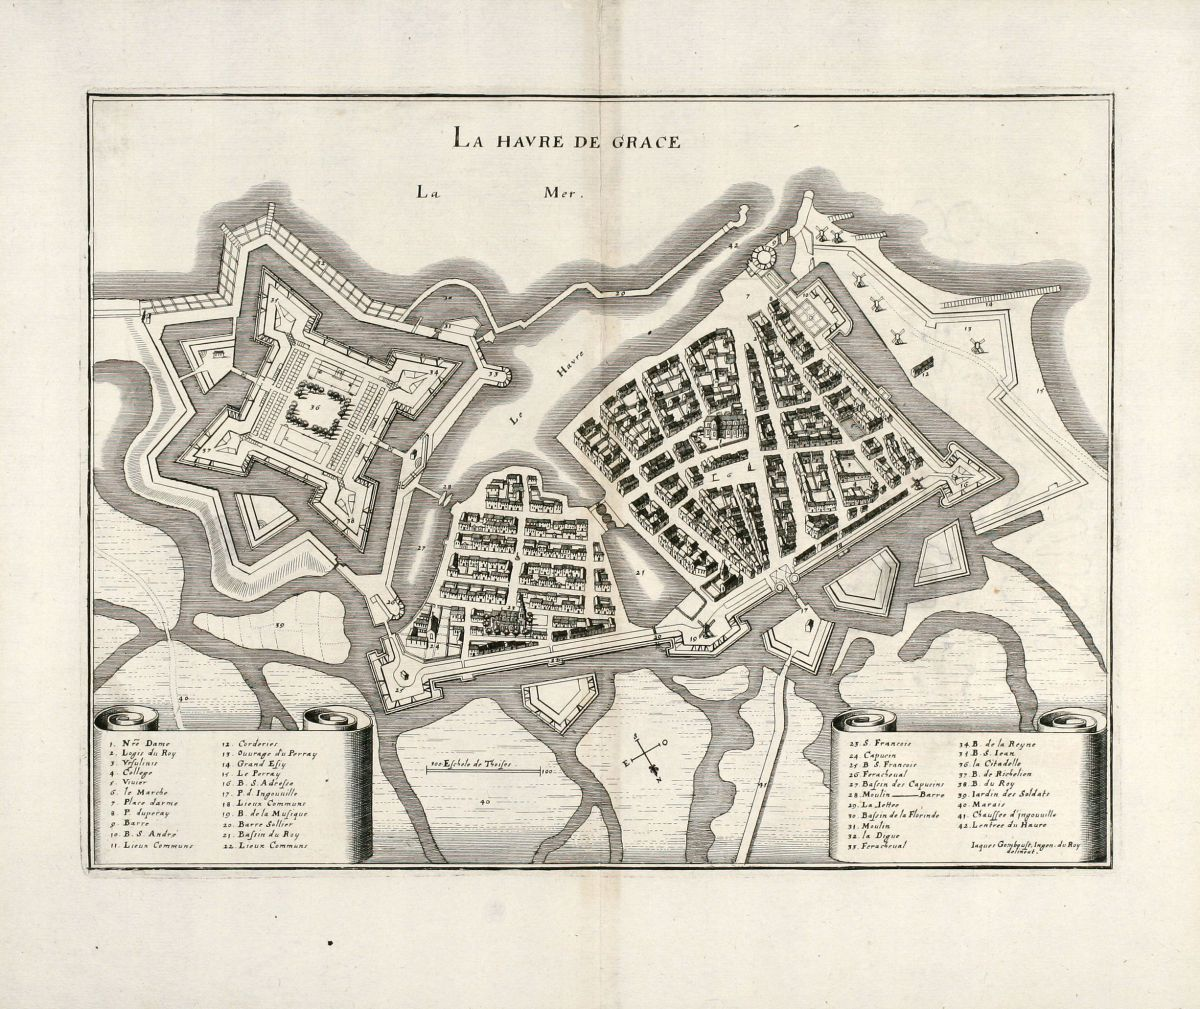 Map Of France Le Havre.La Havre De Grace Merian France Le Havre Normandy 1657